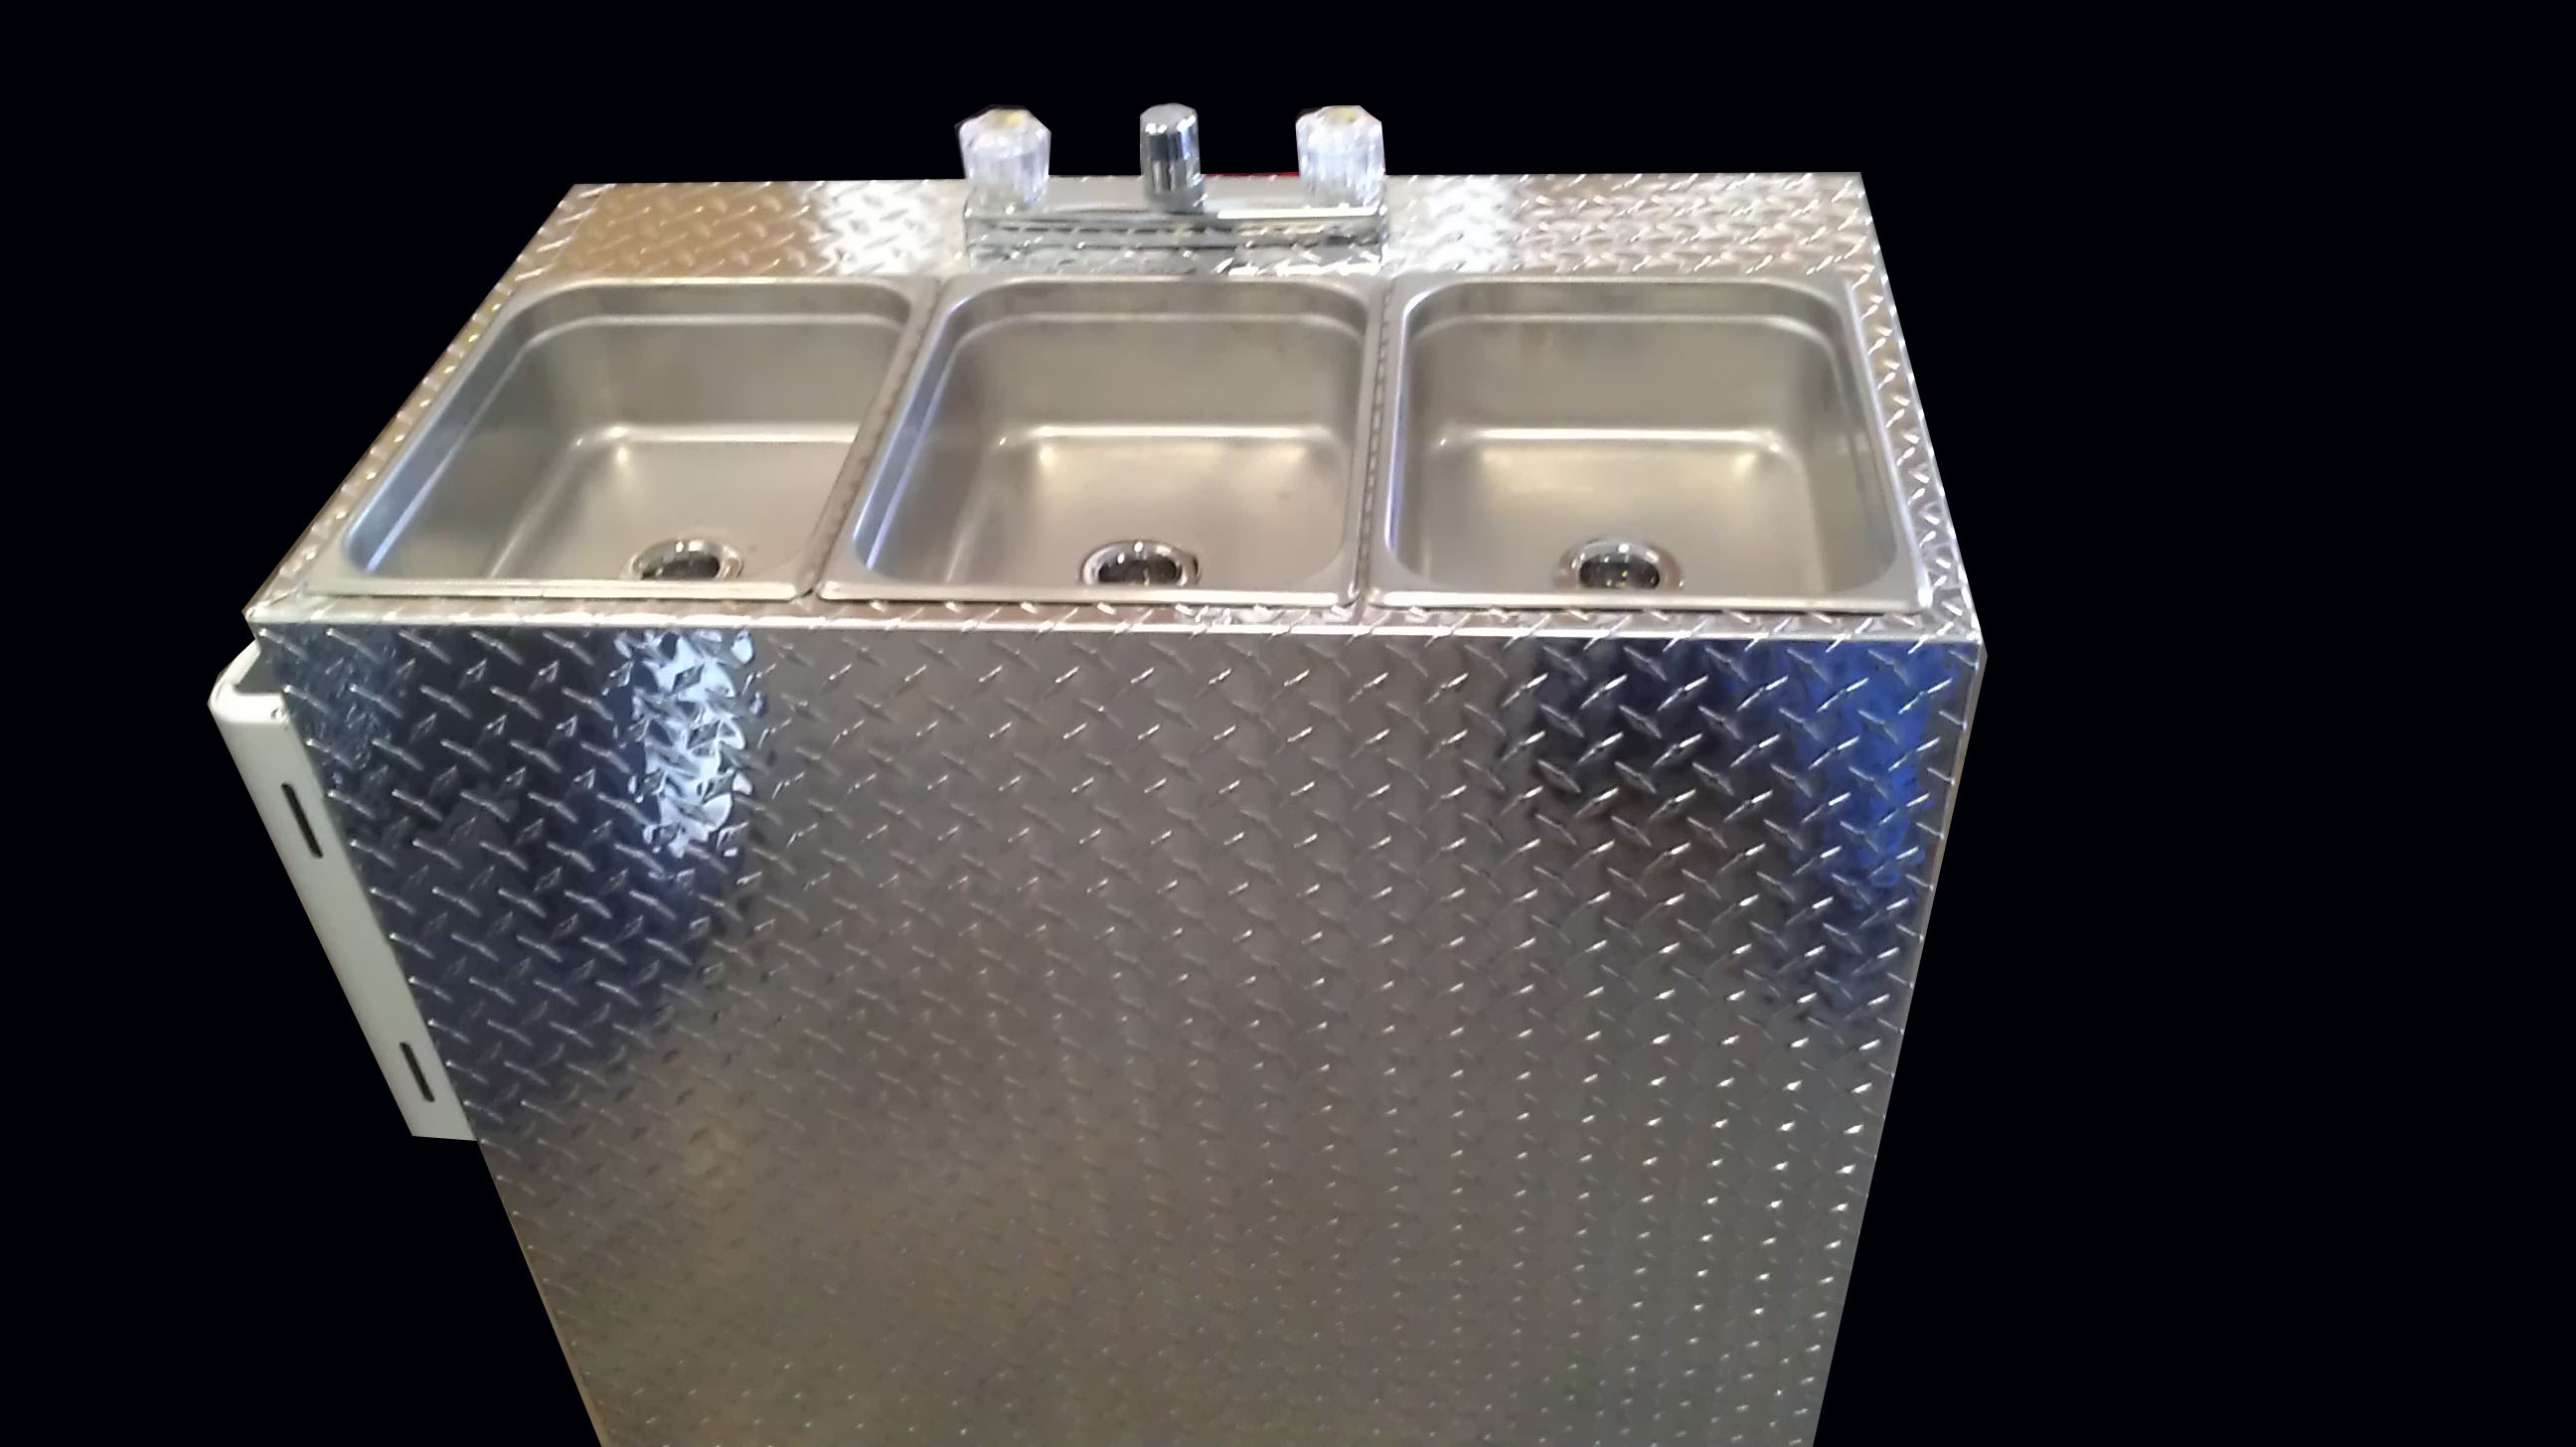 large 3 compartment self contained portable sink 12v lp gas tank less hot water heater diamond plate